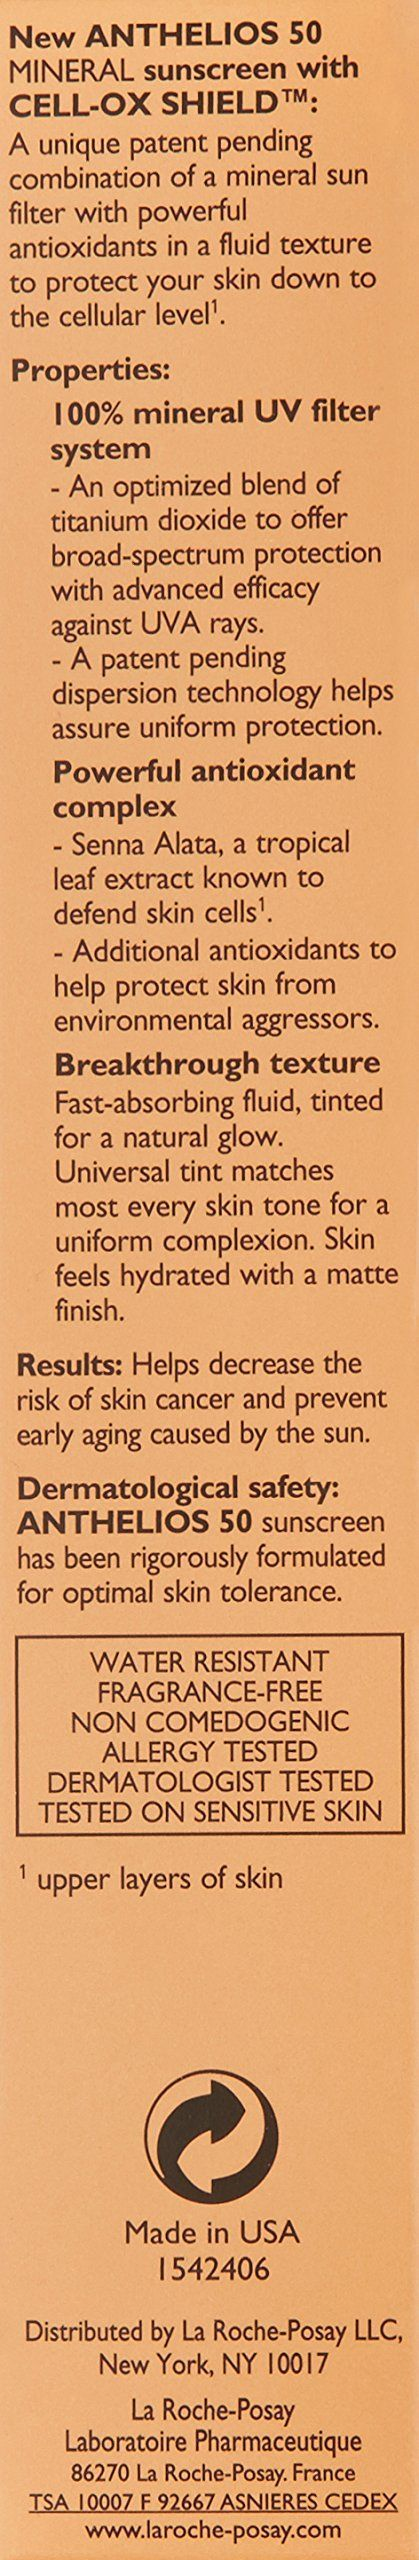 La Rocheposay Anthelios 50 Tinted Mineral Sunscreen Spf 50